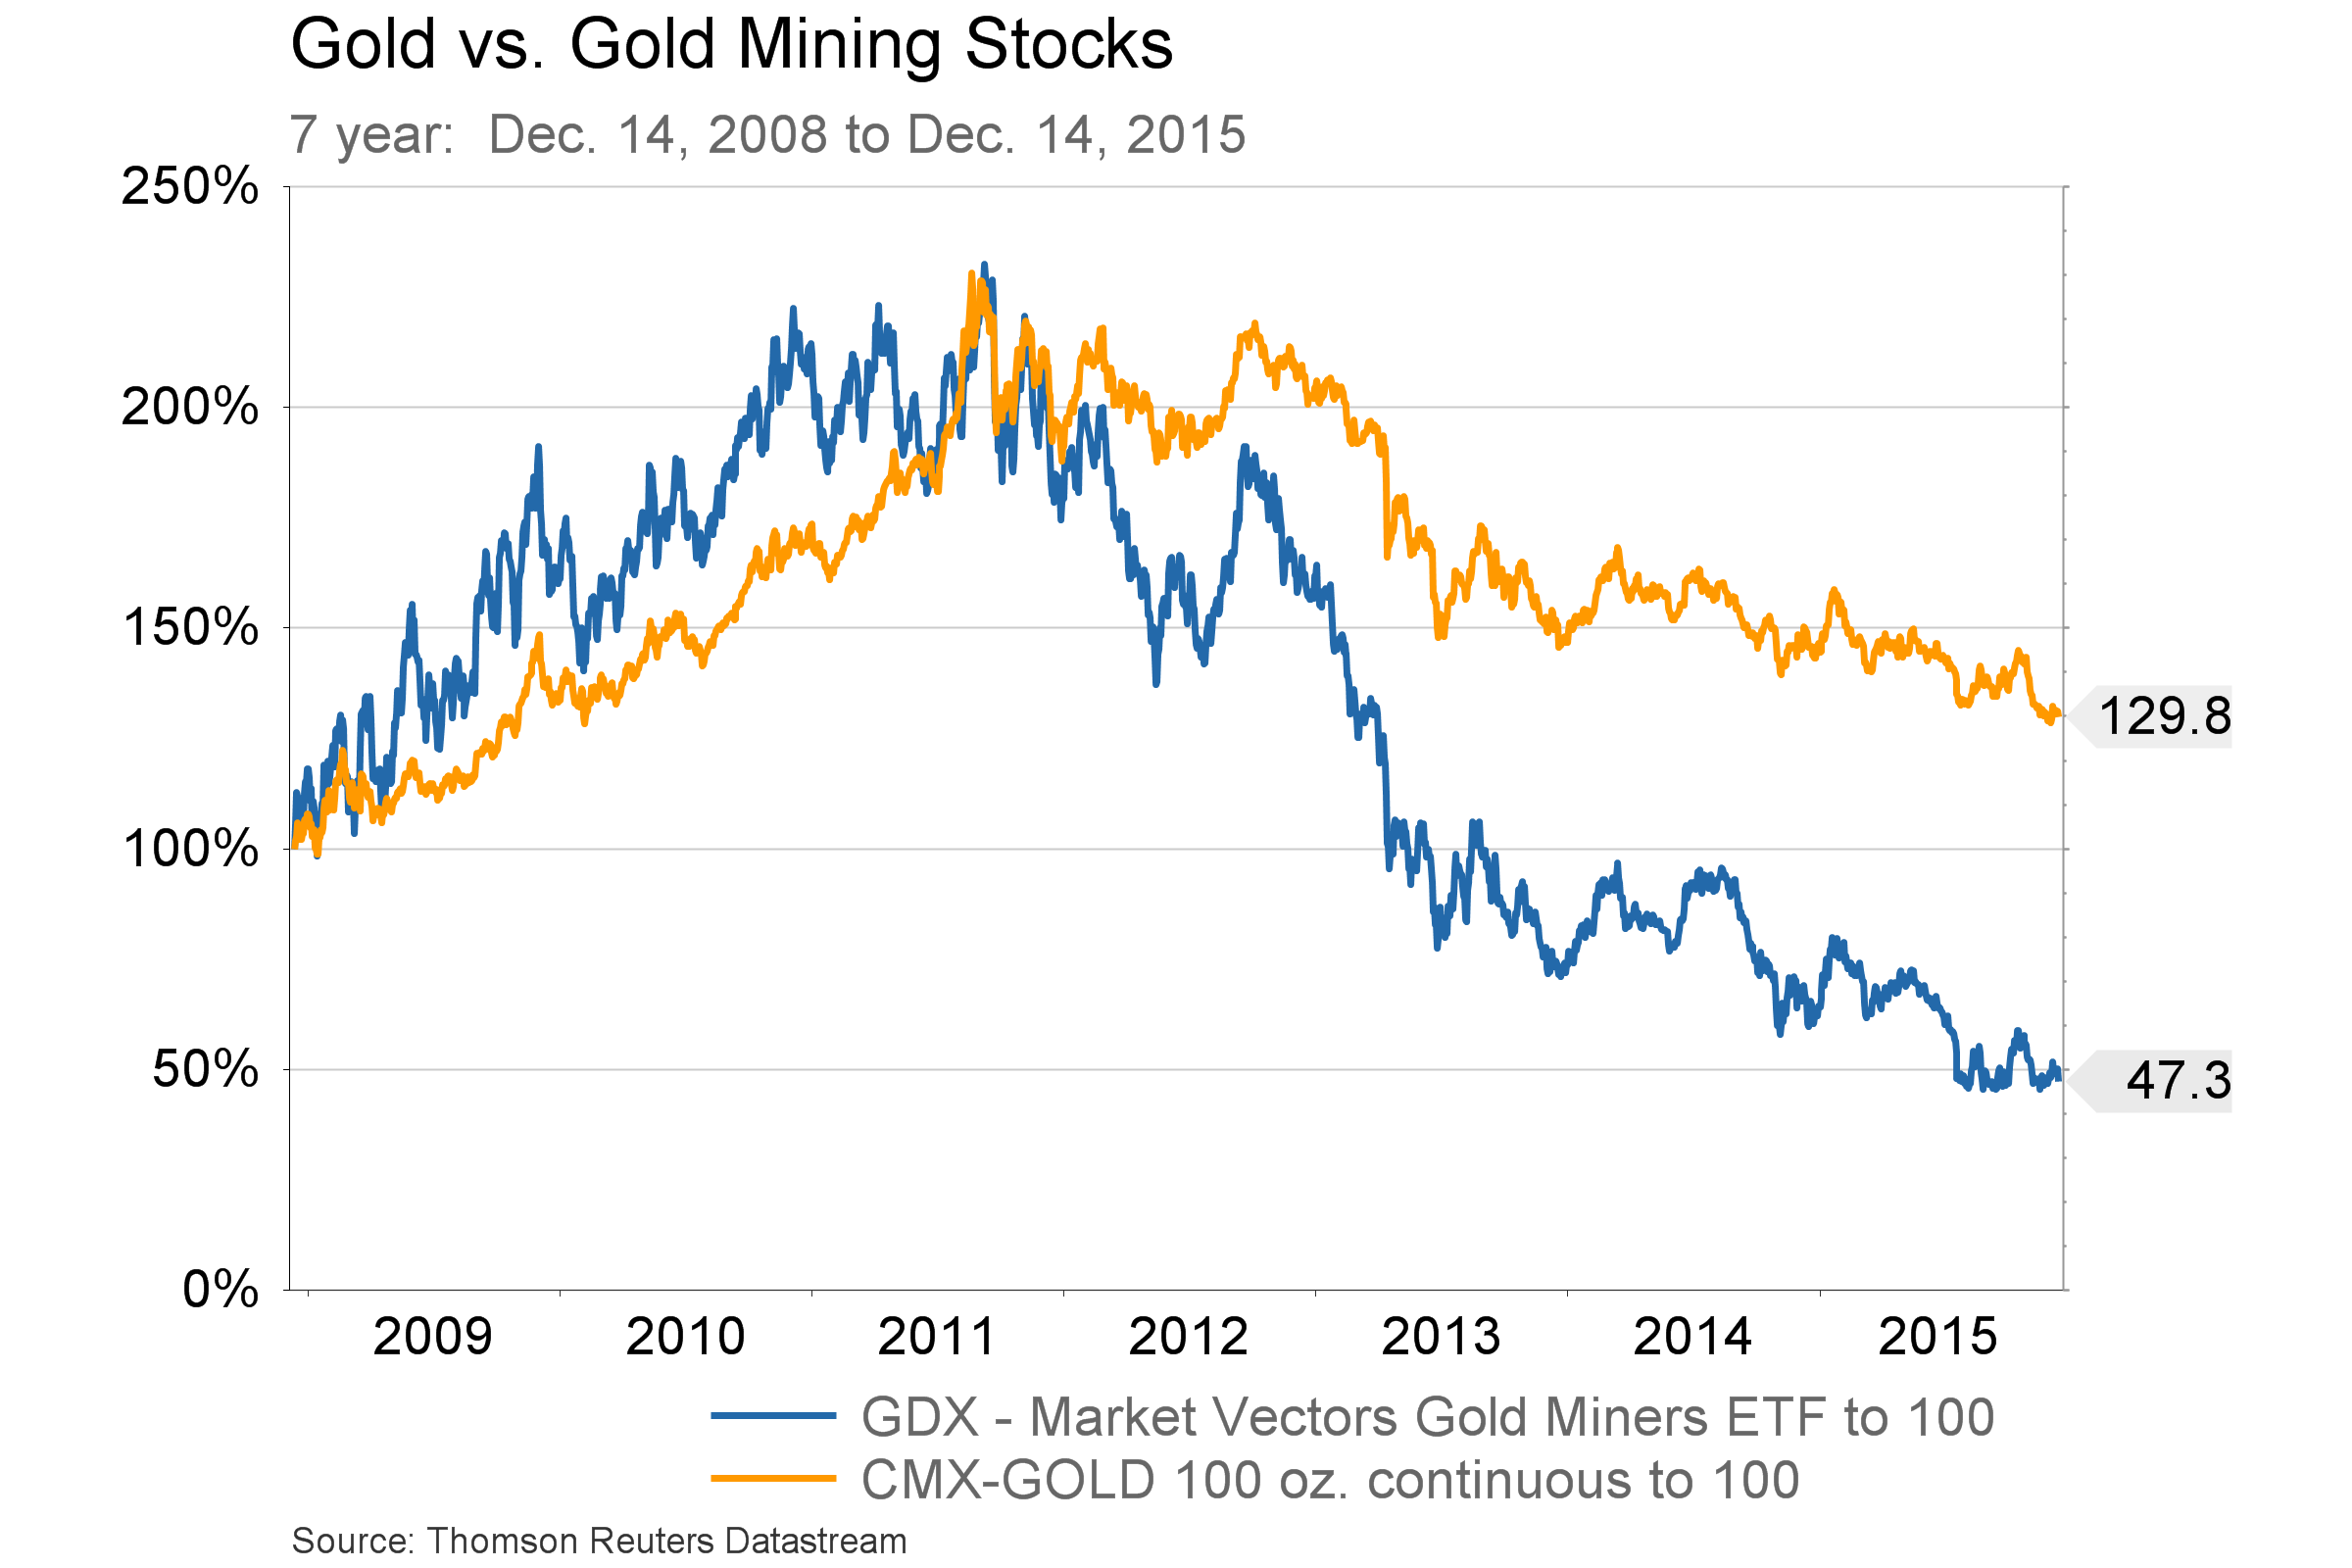 Dec. 7, 2015  - Gold and GDX